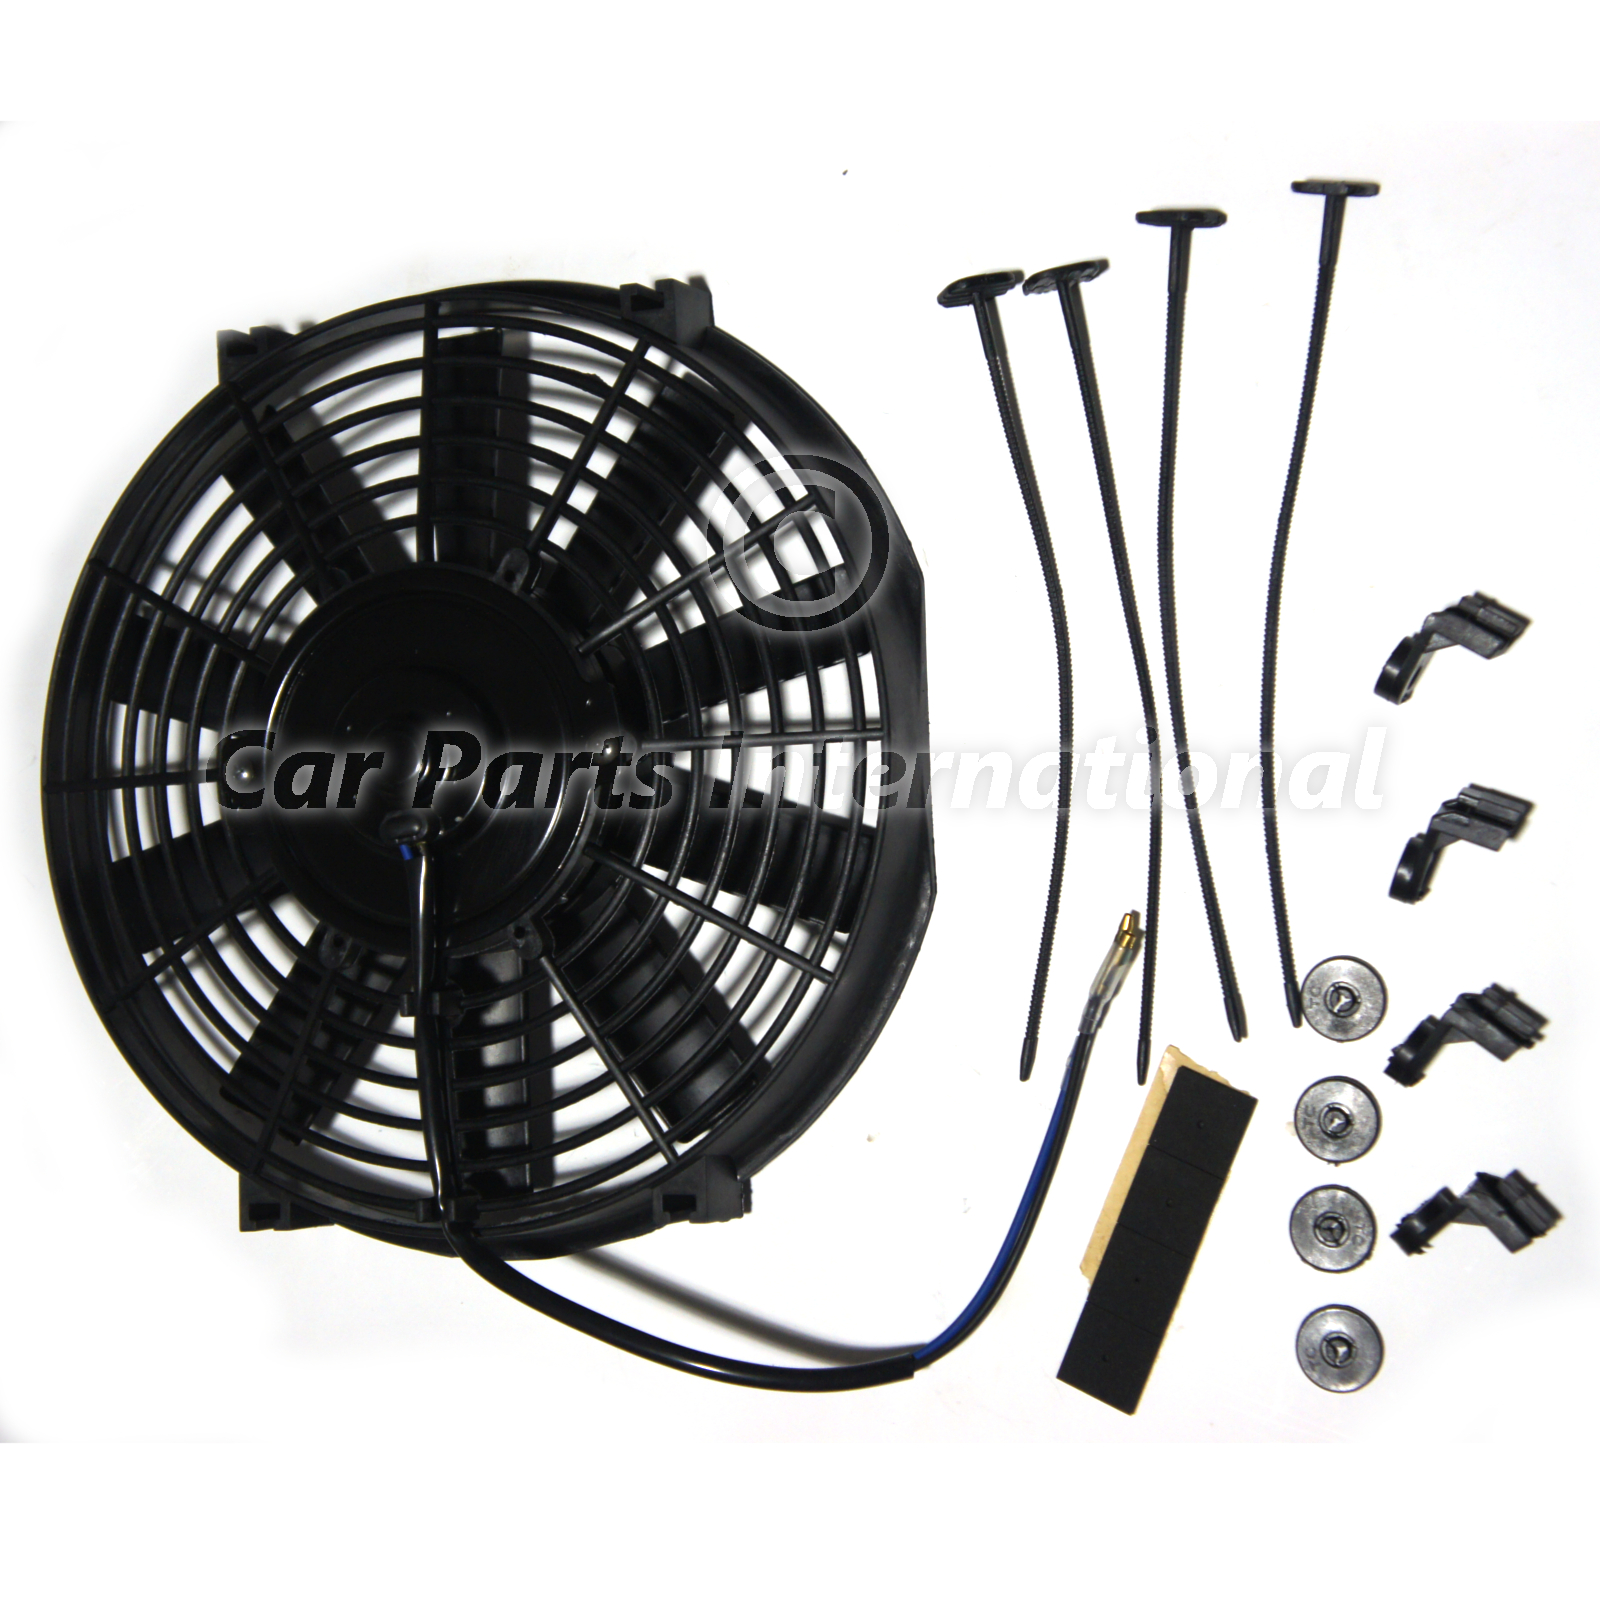 cooling fan 10 250mm universal 12v electric cooling fan perfect for #847347